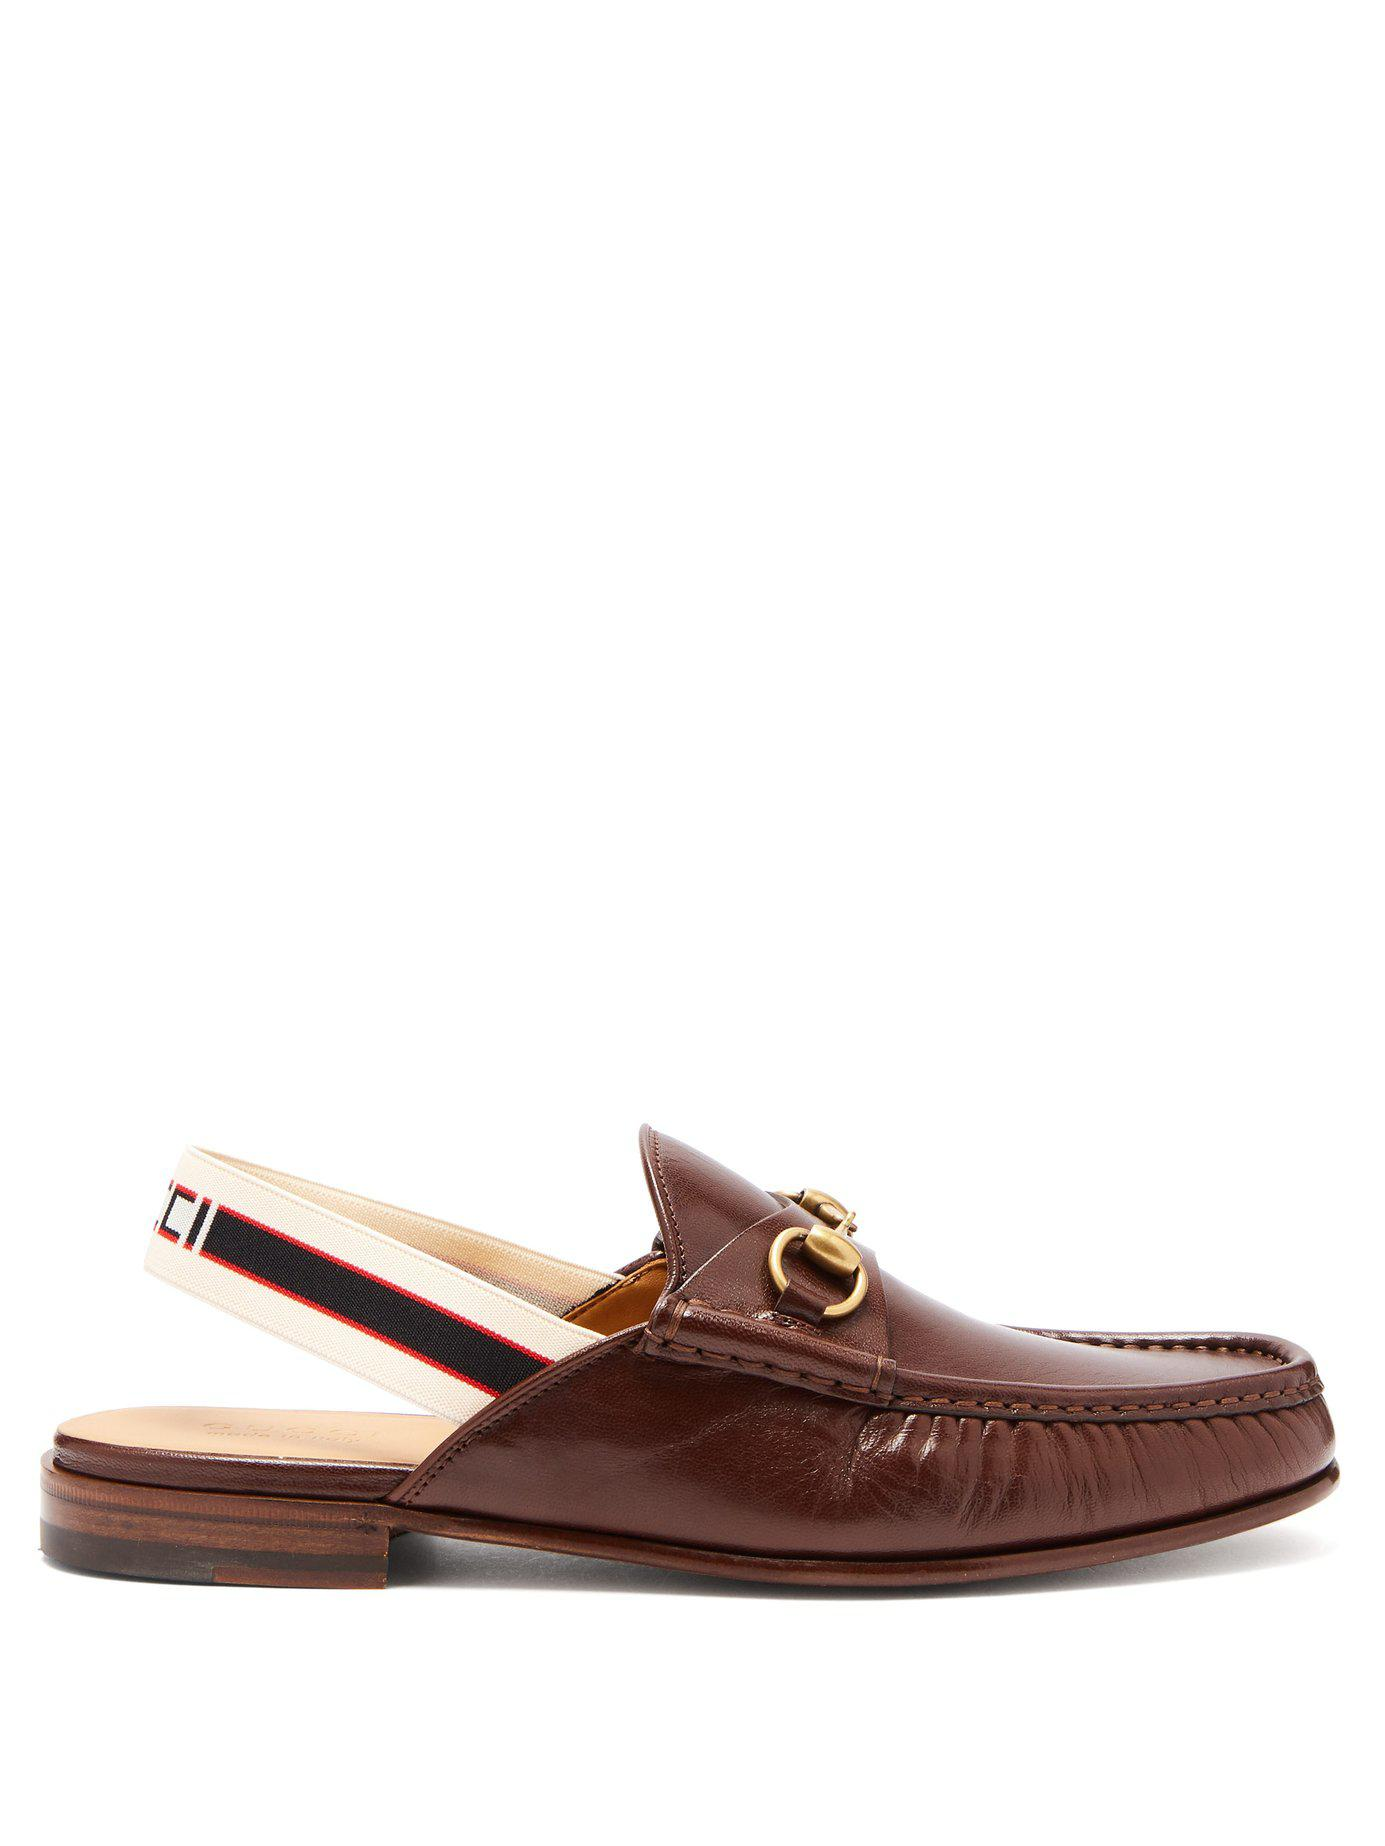 a6d36b344ee Lyst - Gucci Roos Horsebit Slingback Strap Leather Loafers in Brown ...